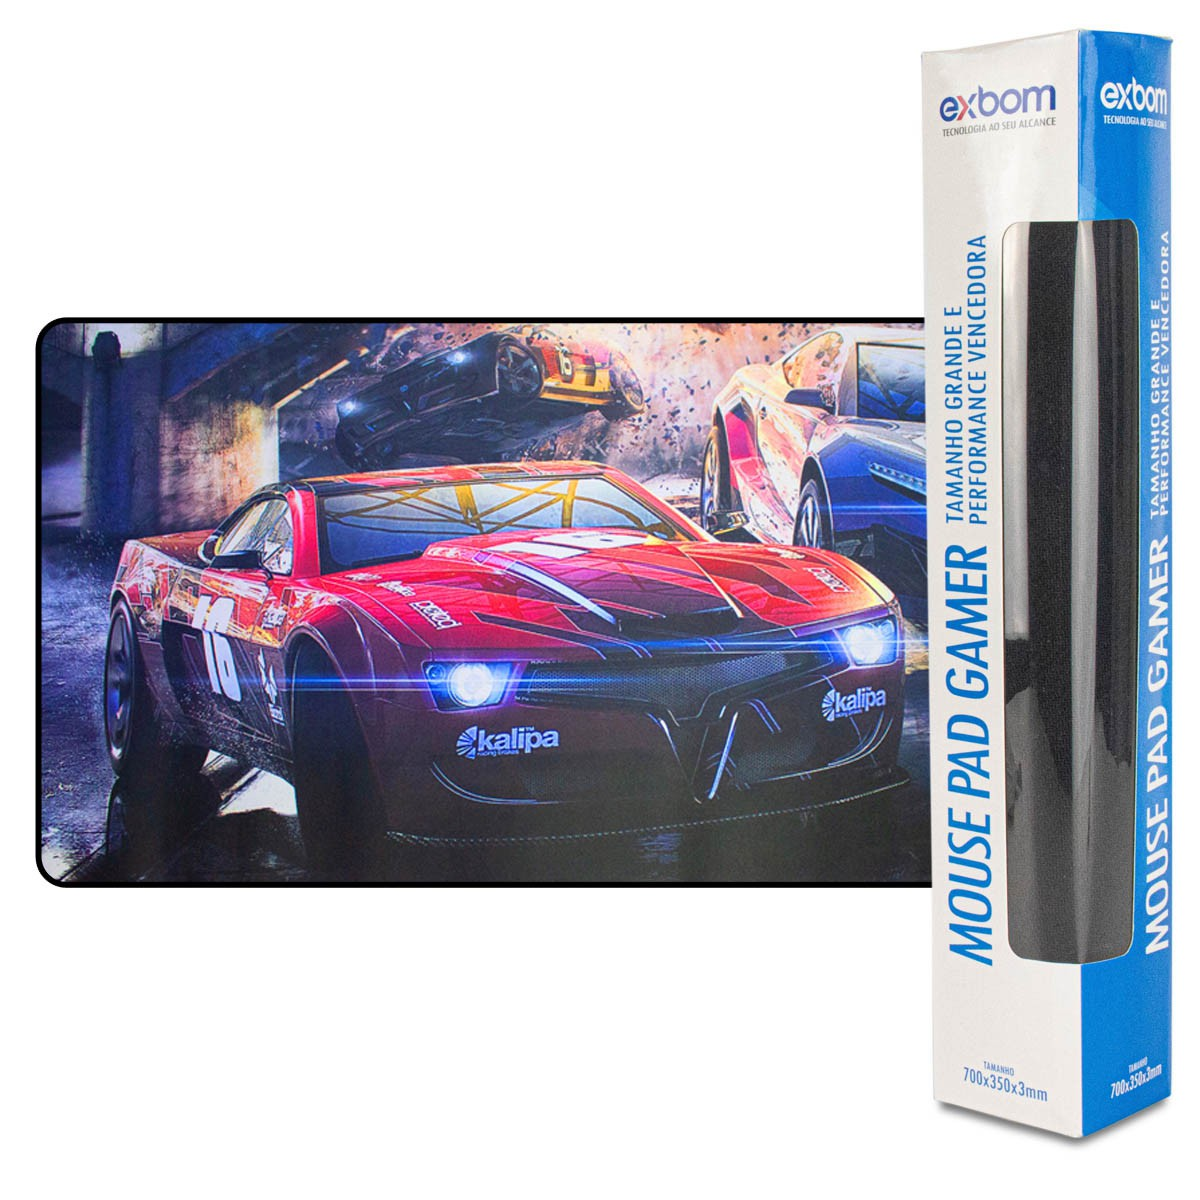 Mouse Pad Gamer Exbom MP-9040A Extra Grande 900x400x3mm